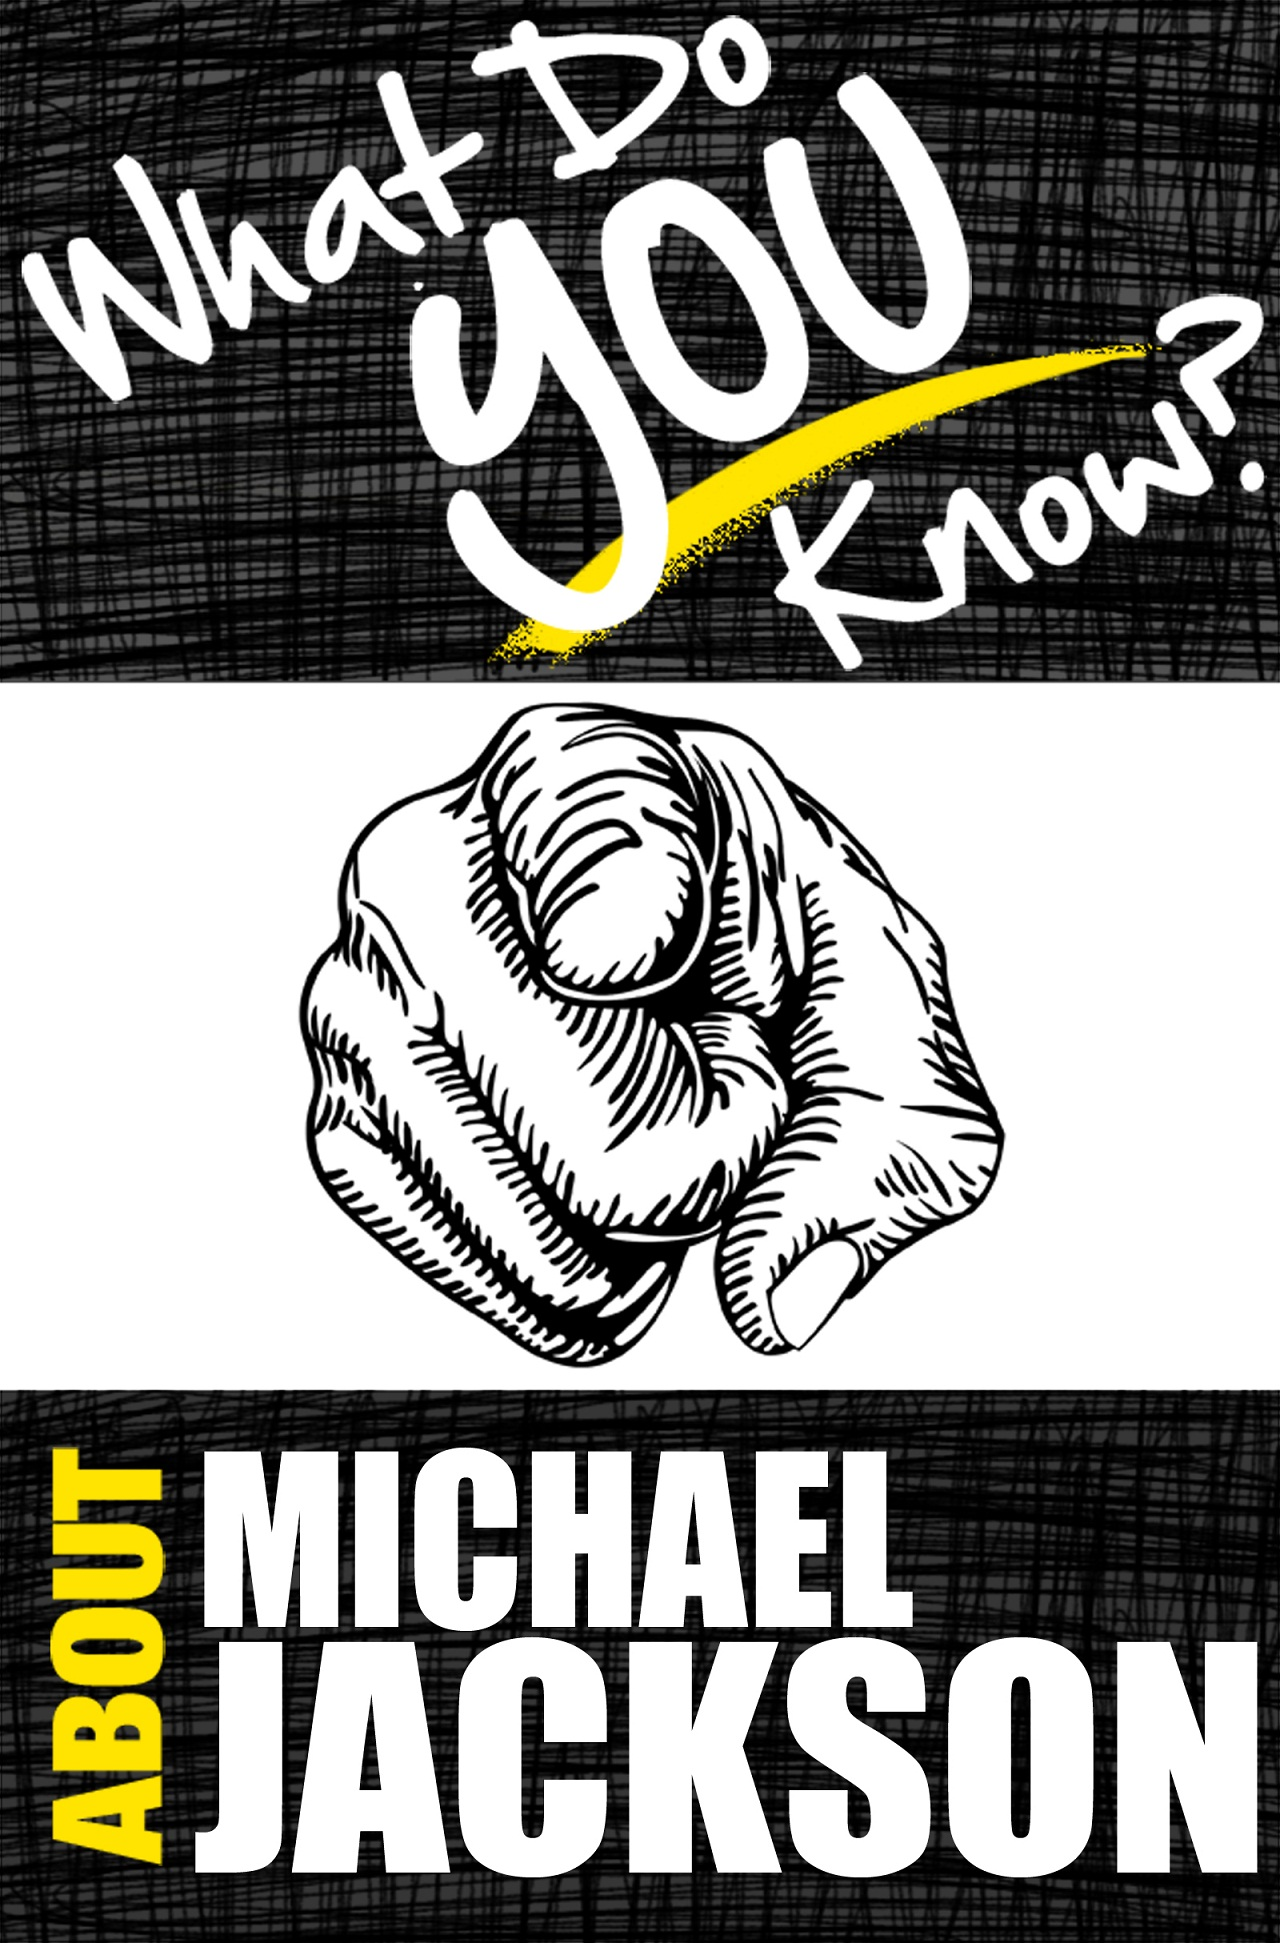 What Do You Know About Michael Jackson?